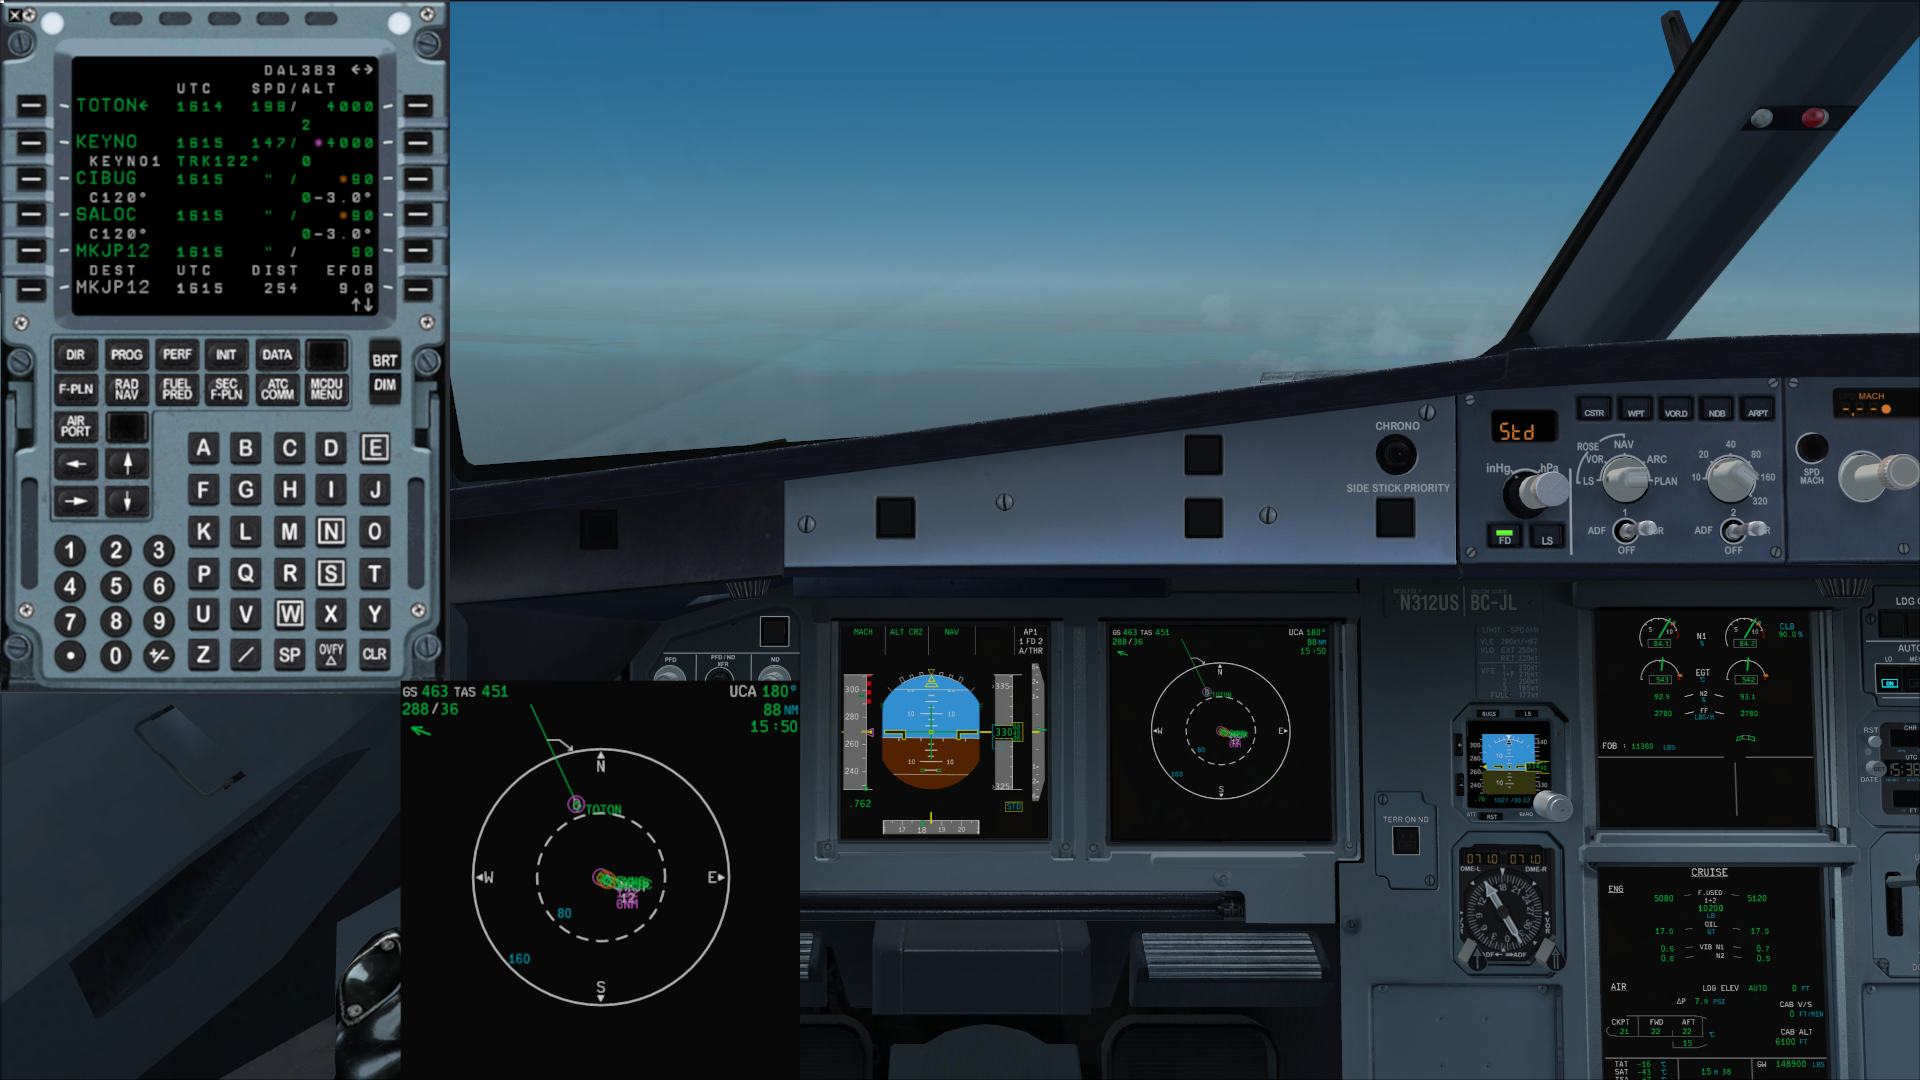 LOSS OF FMGS FUNCTIONS ON mcdu - Archive - Flight Sim Labs Forums